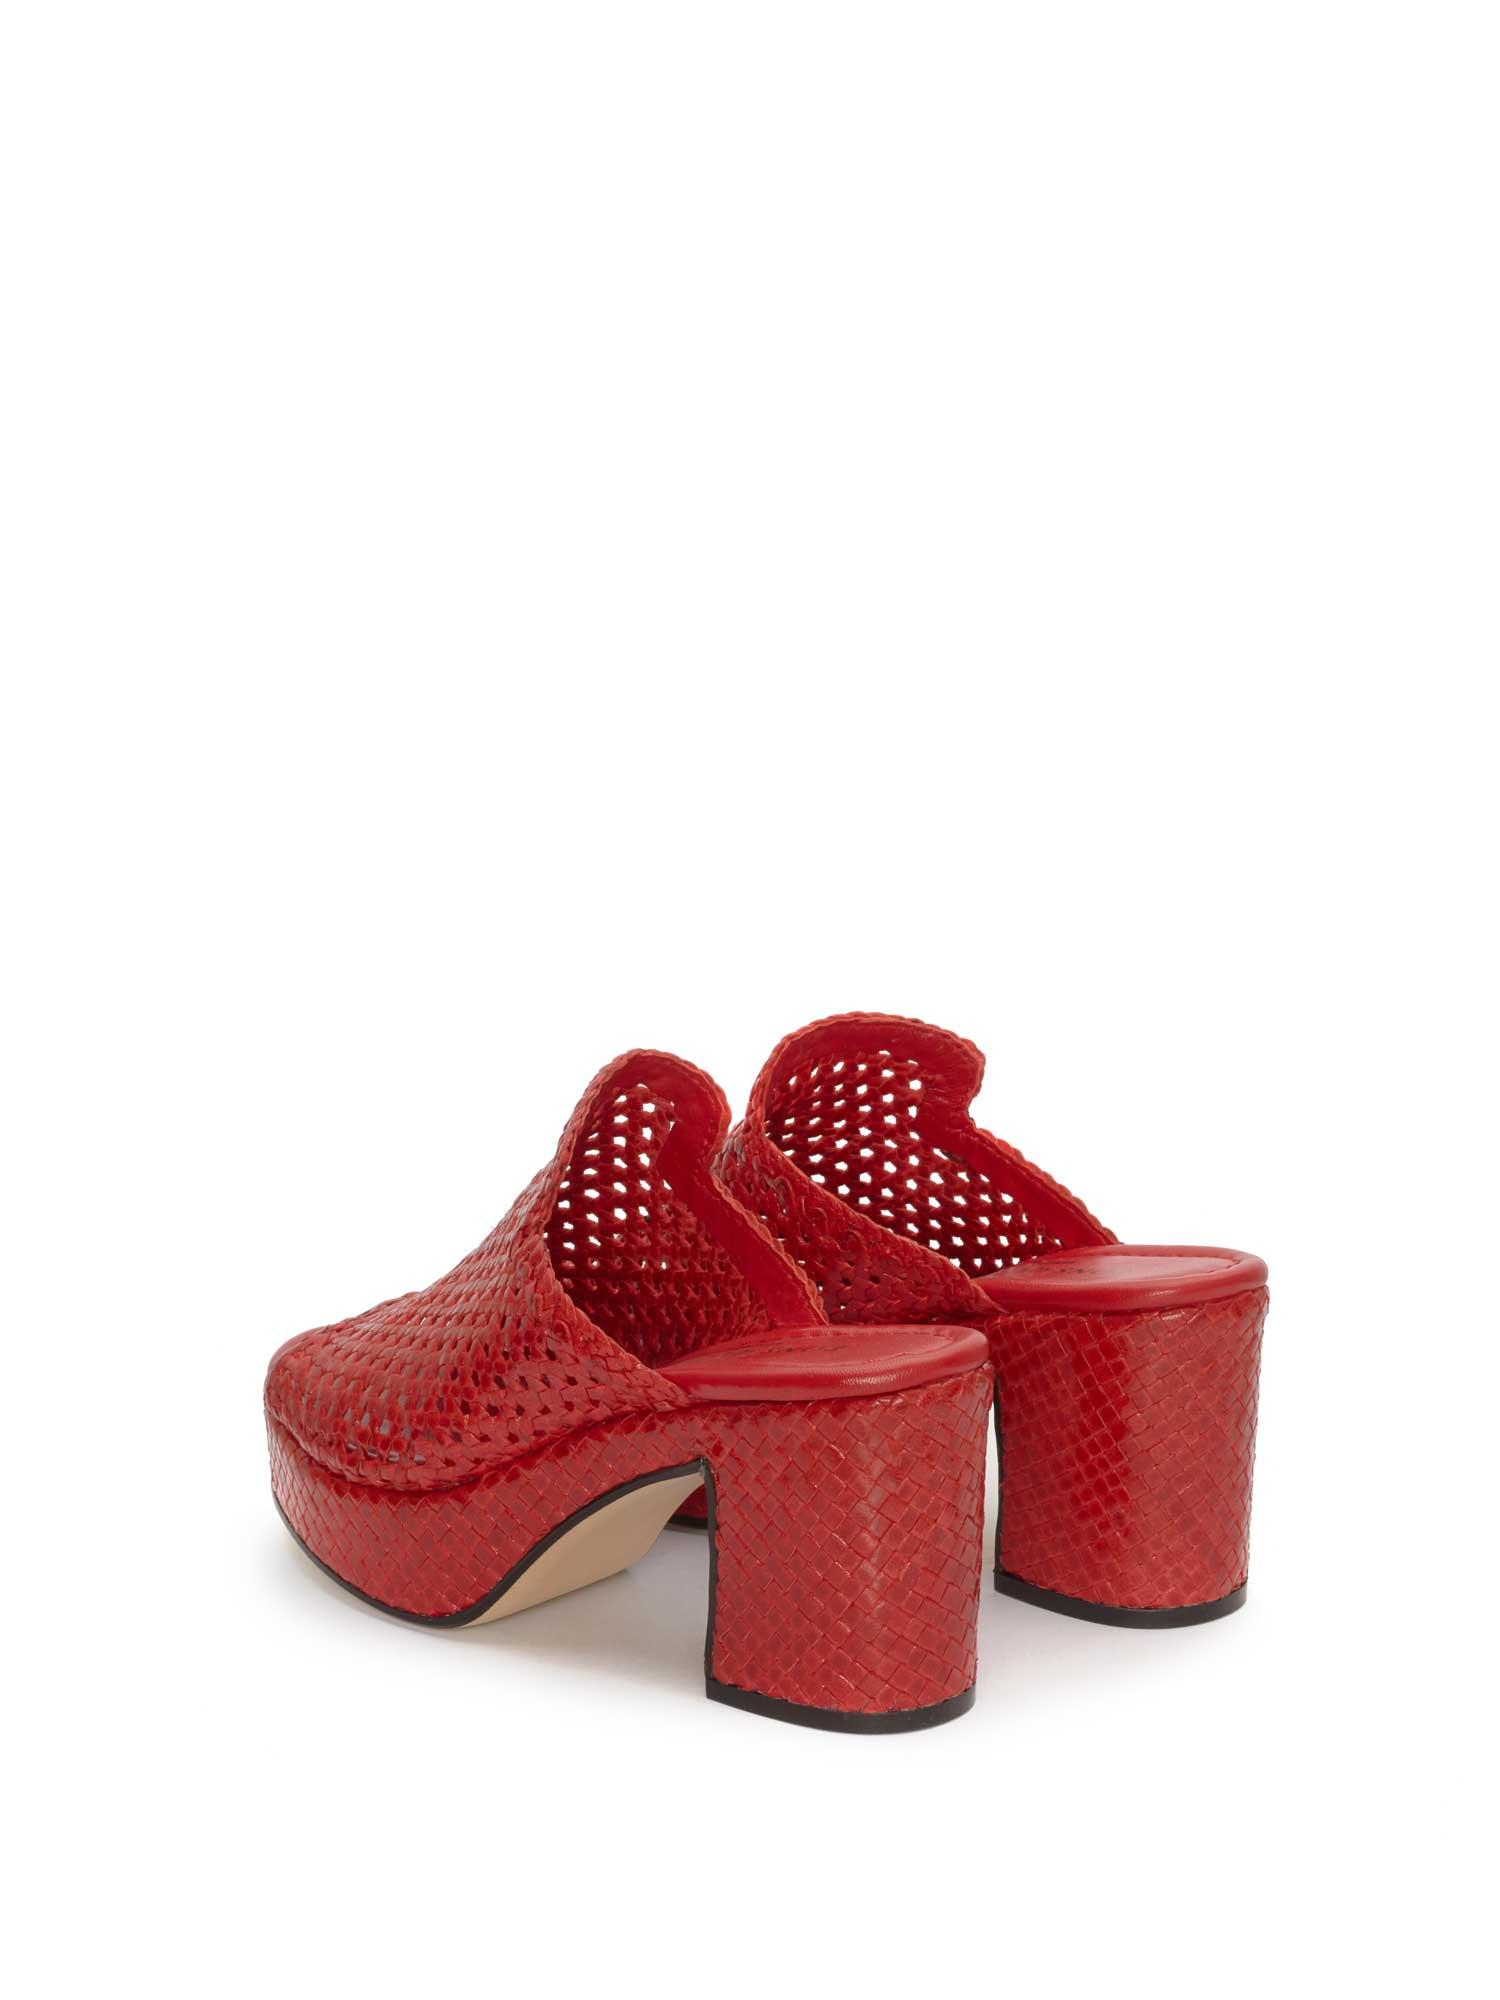 RED BRAIDED HEEL SANDAL